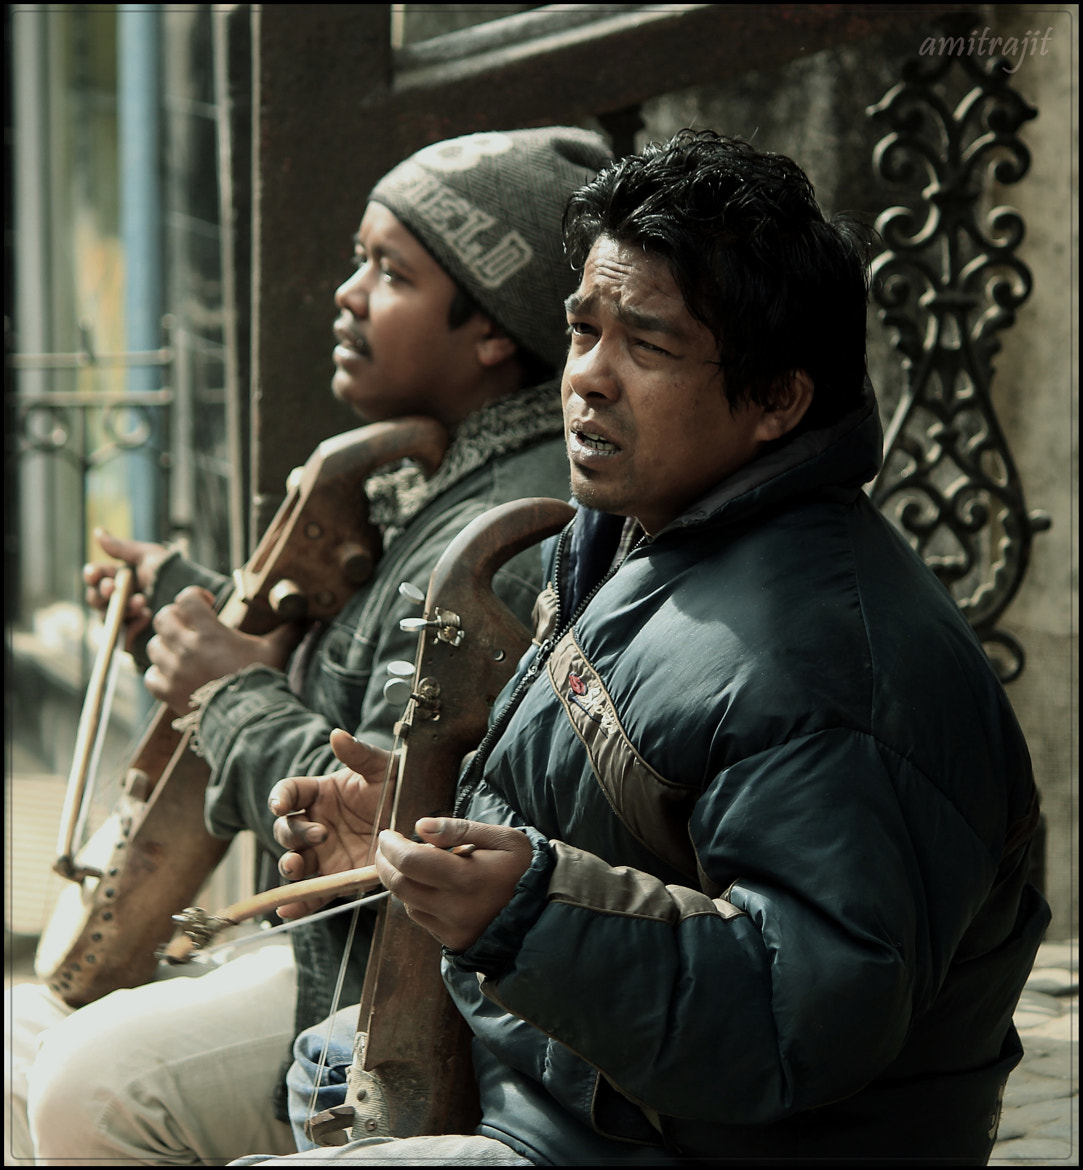 Photograph Folk musicians by Amitrajit Niyogi on 500px